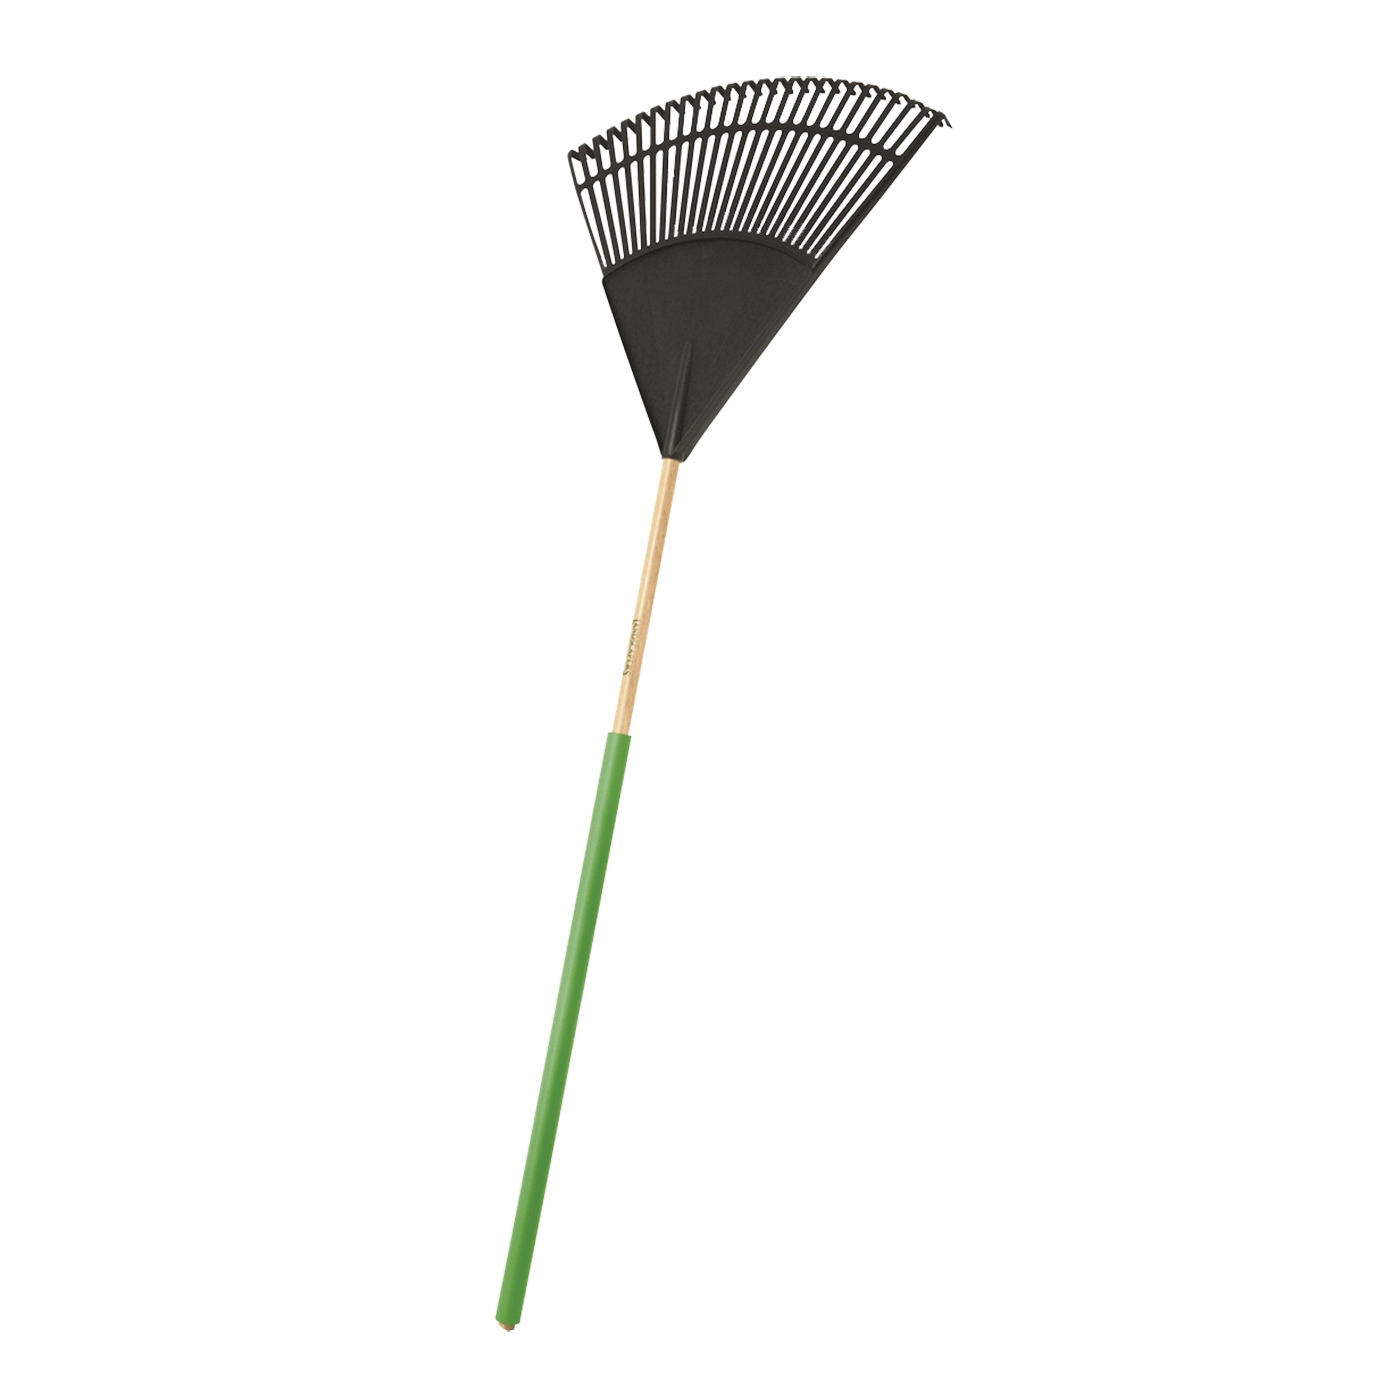 Picture of Landscapers Select 34586 Lawn/Leaf Rake, Poly Tine, 26 -Tine, Wood Handle, 48 in L Handle